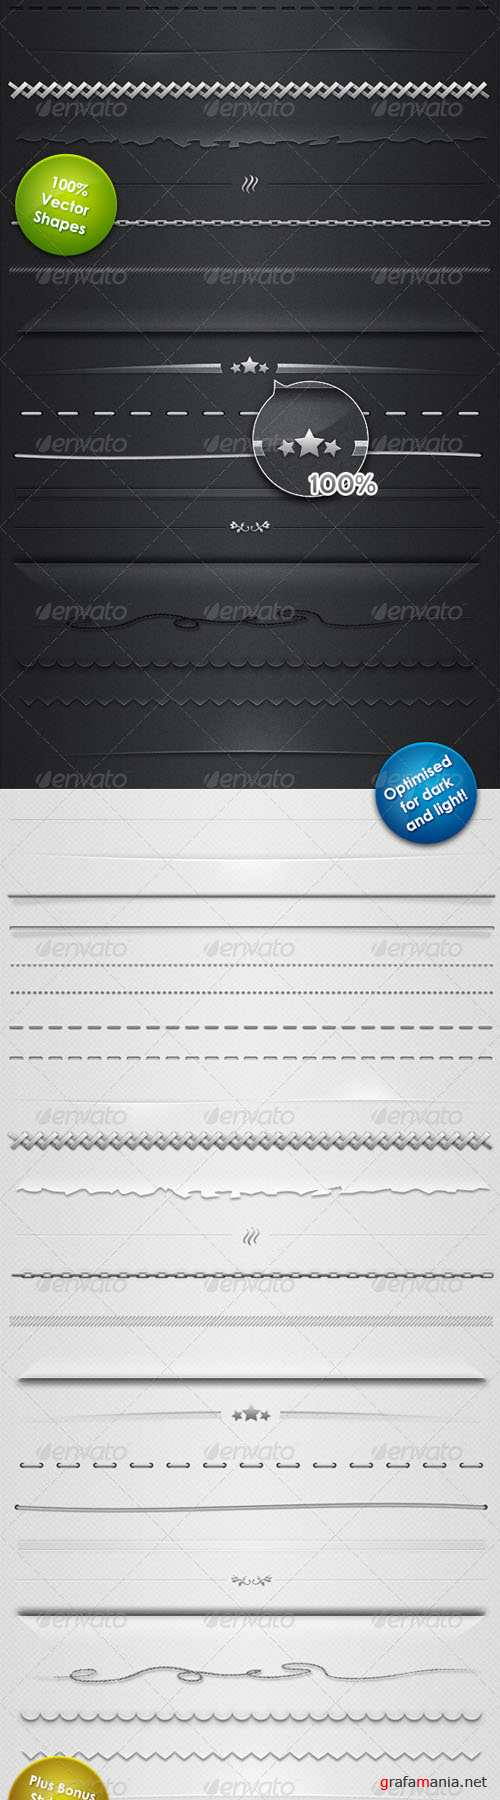 GraphicRiver 25 Horizontal Rules and Dividers - 100% Resizable